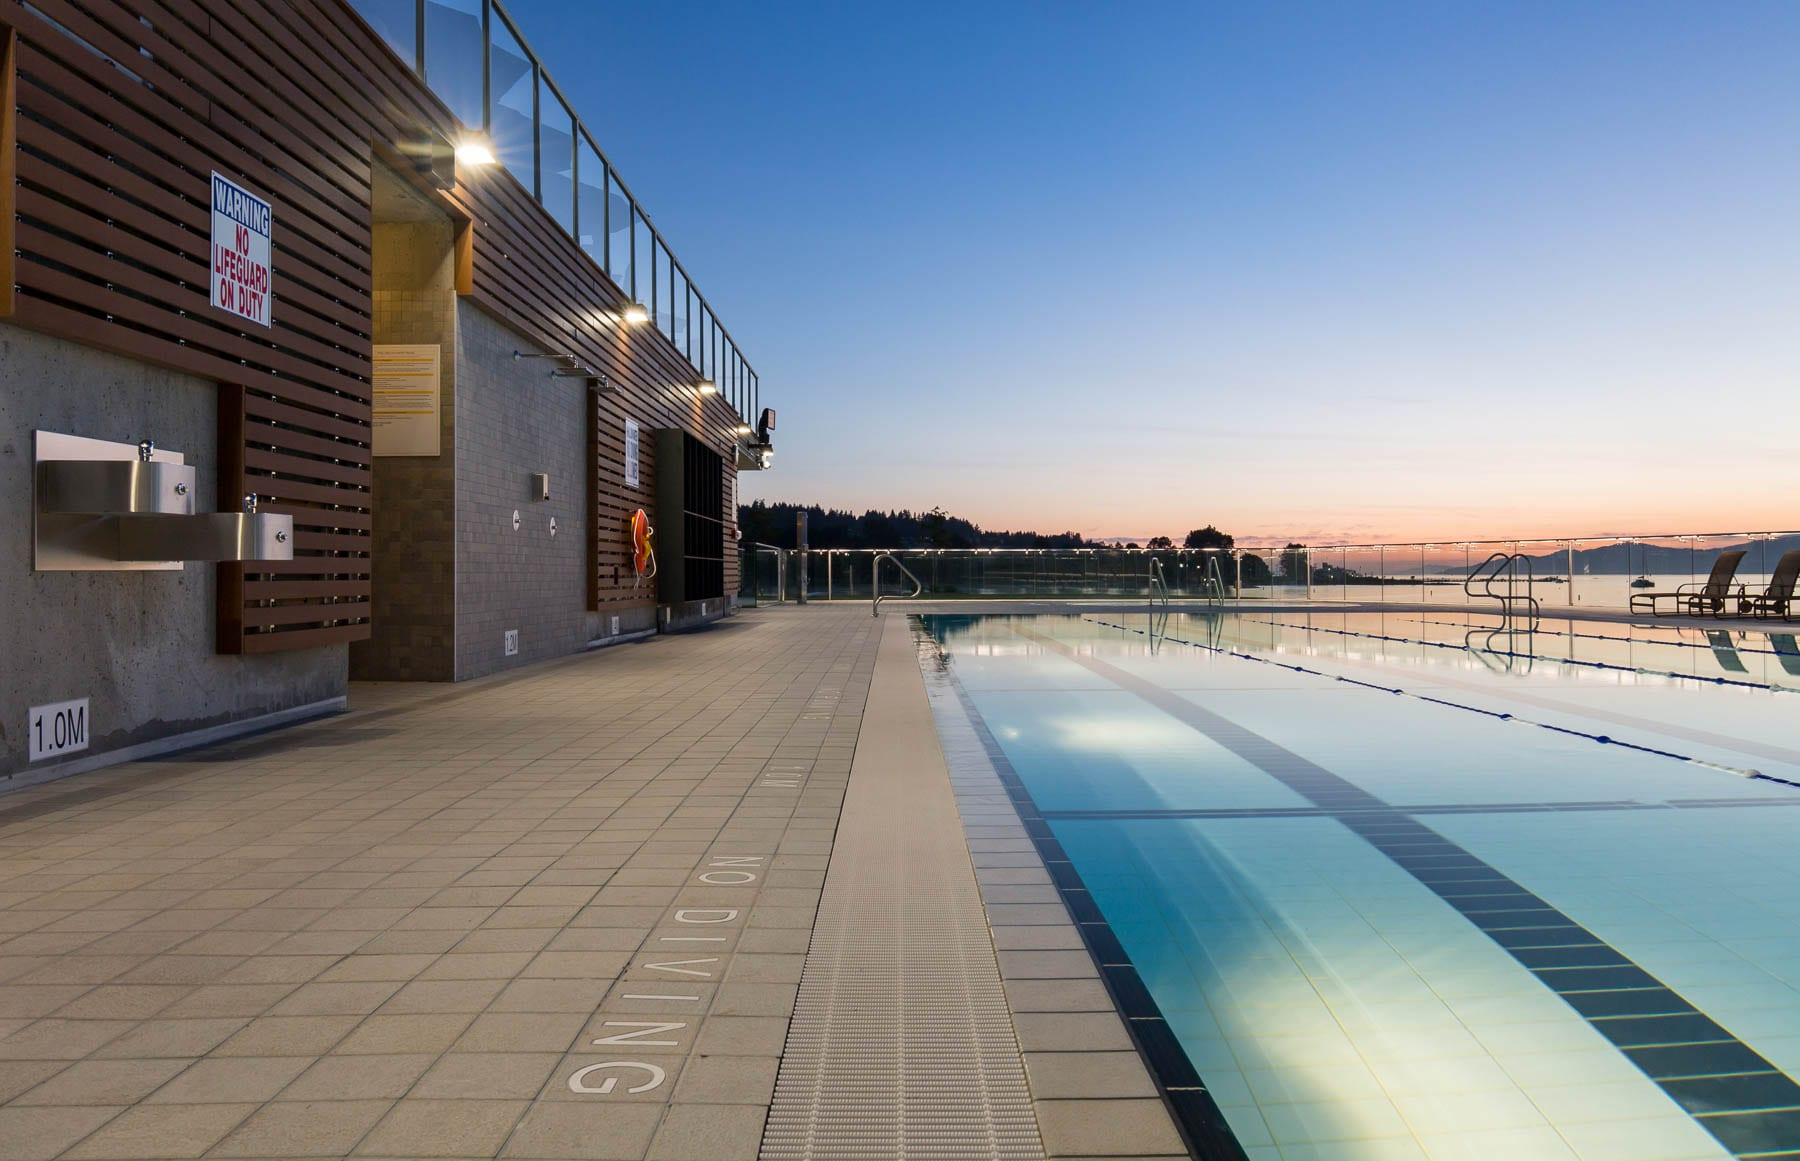 Renovated point grey outdoor swimming pool at beautiful sunset